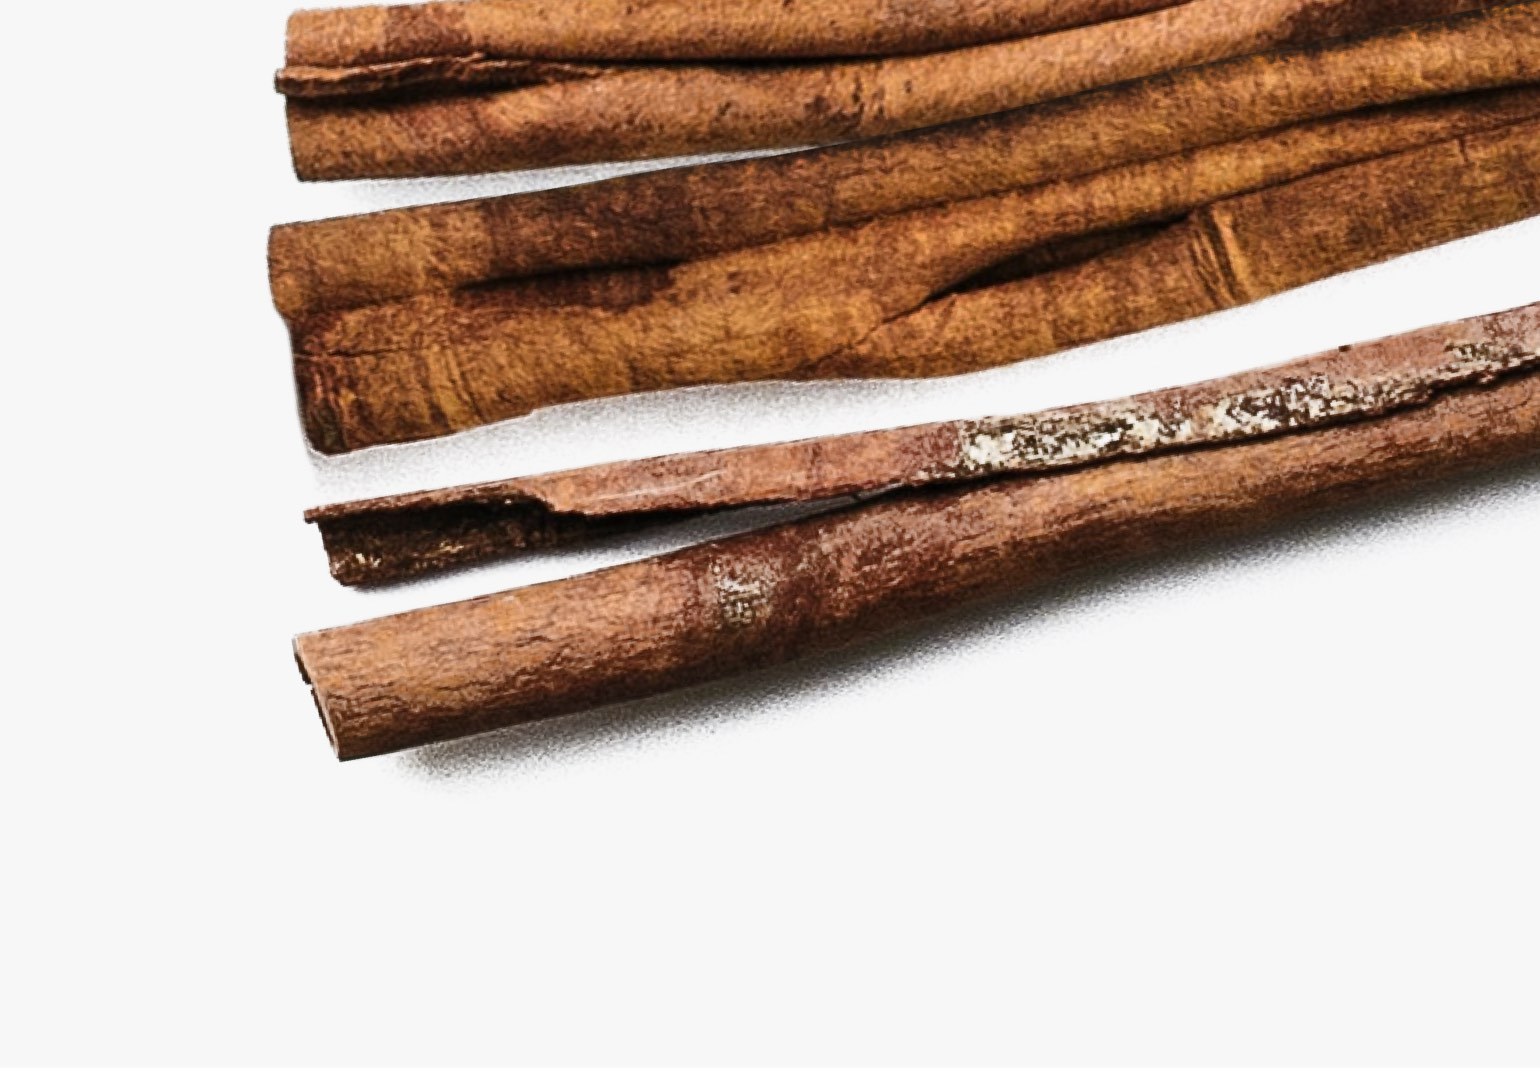 Whole cinnamon sticks.